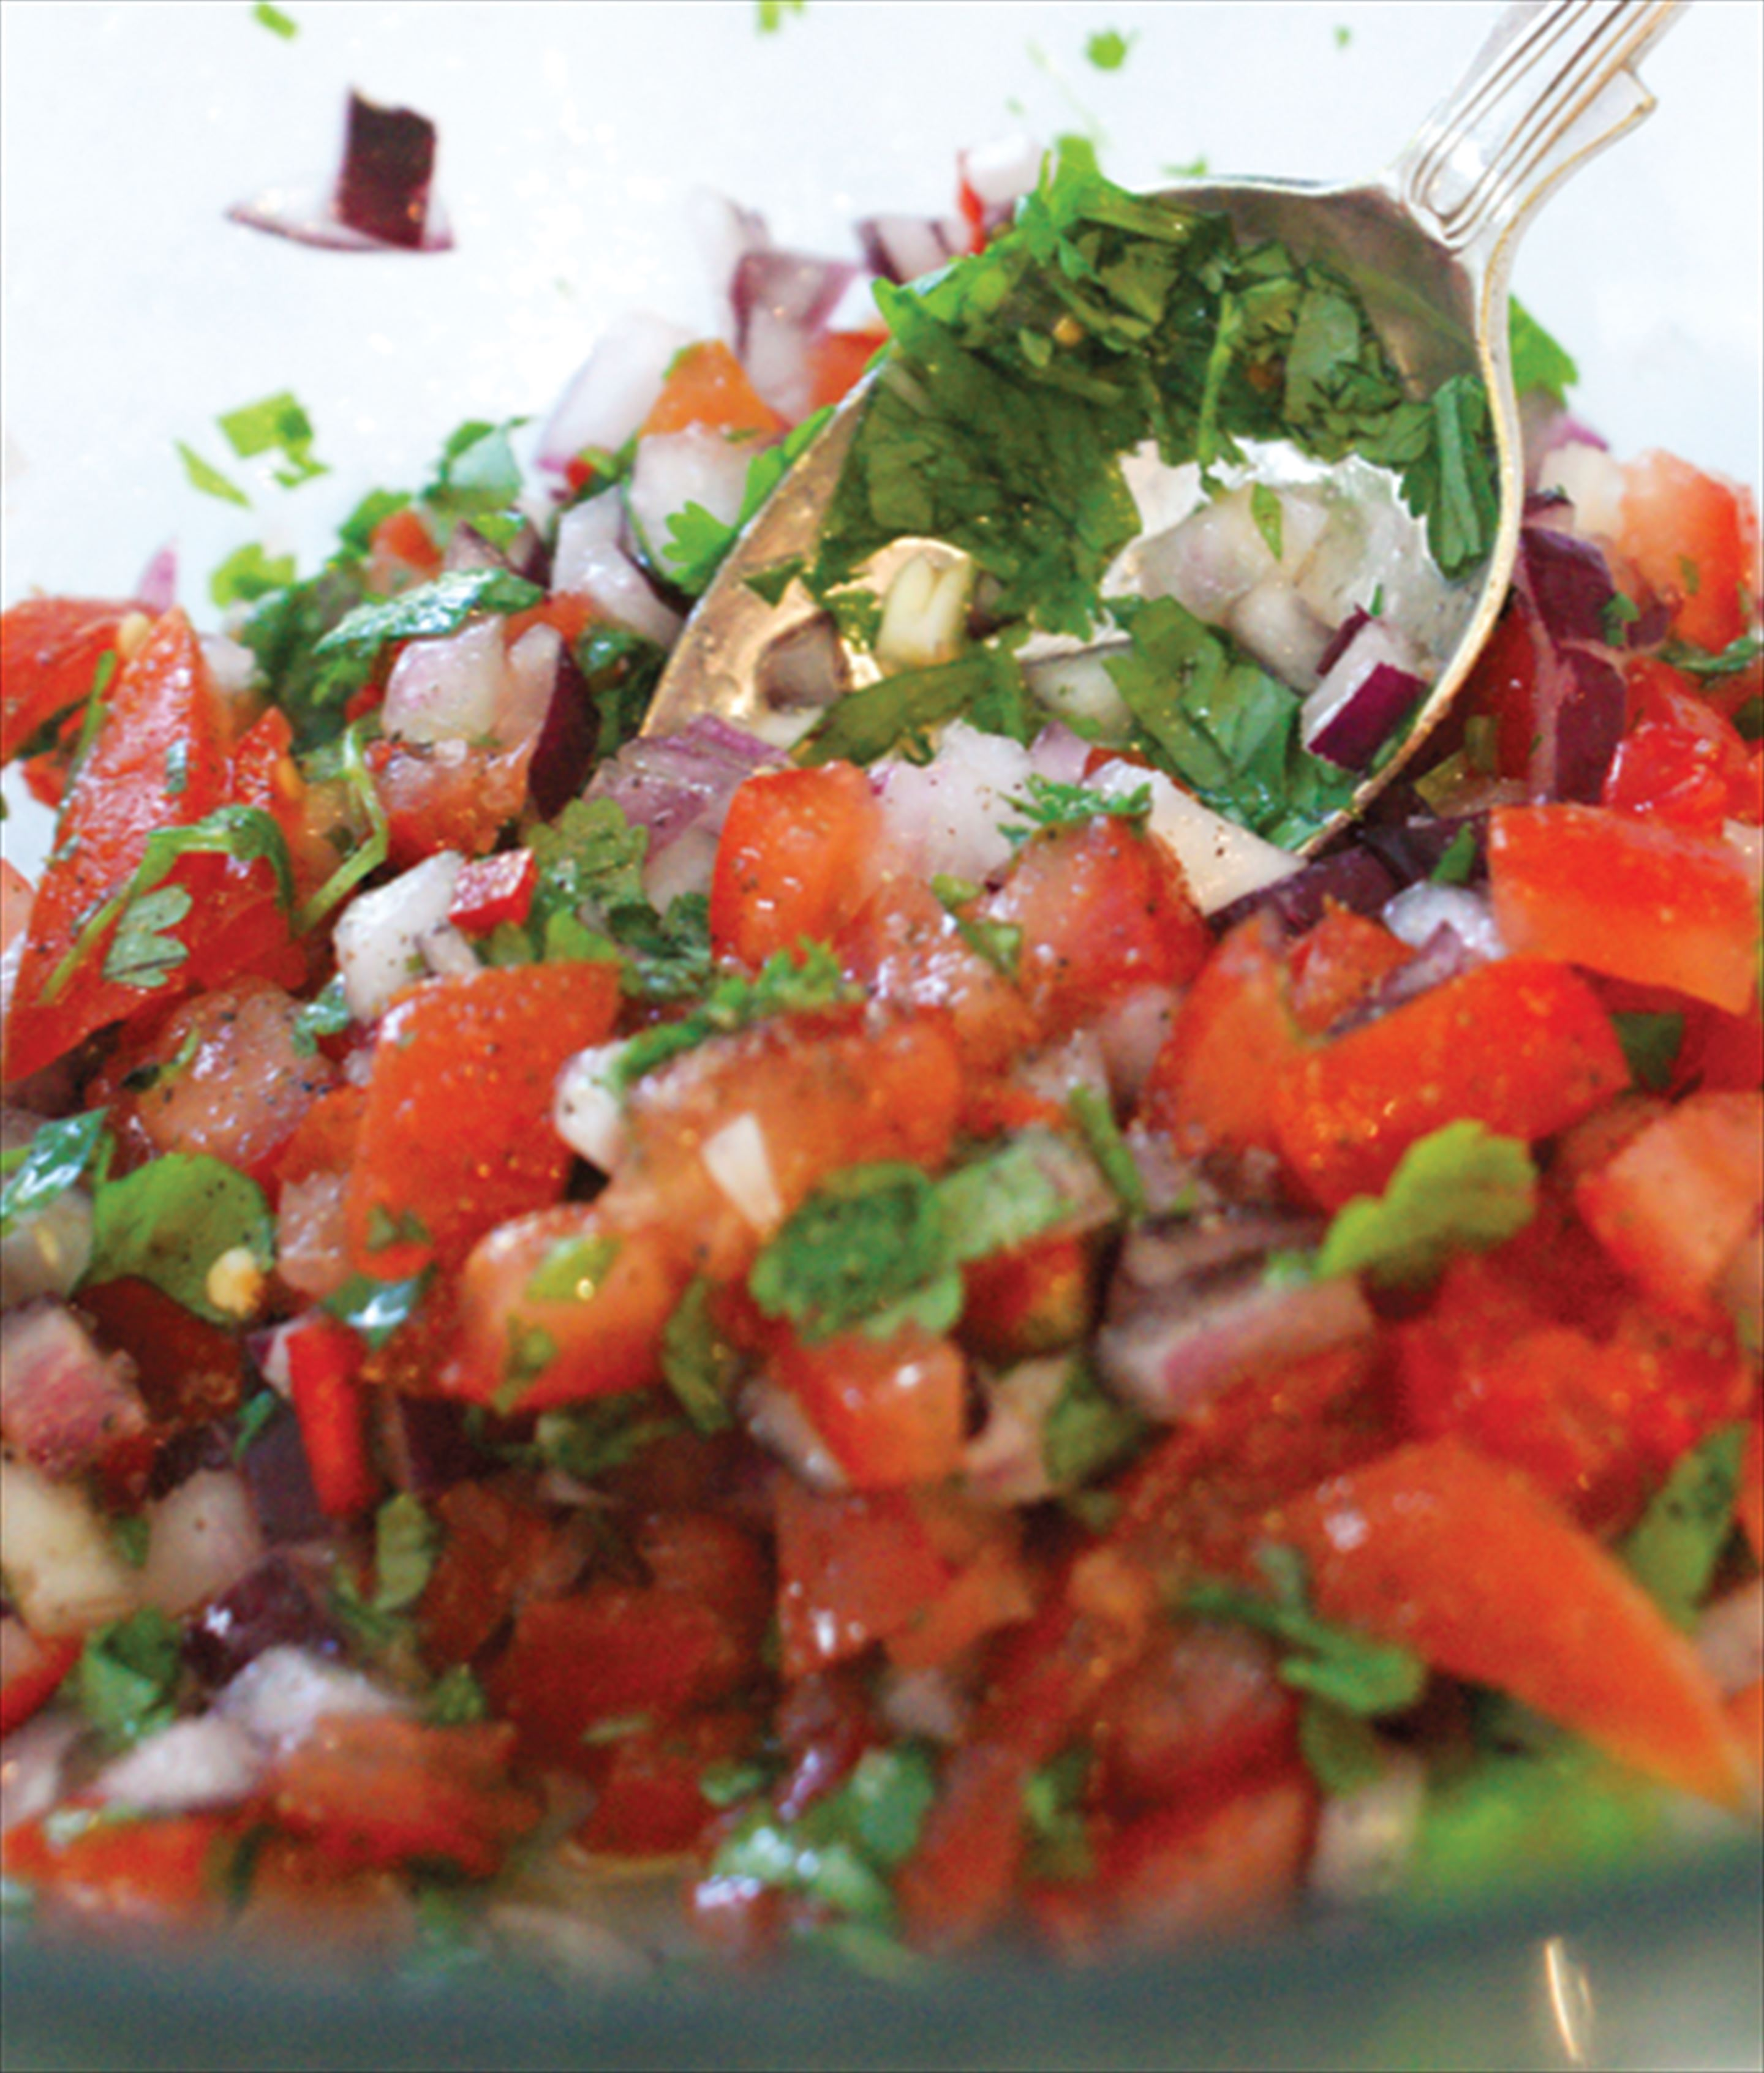 Mexican spicy tomato salsa